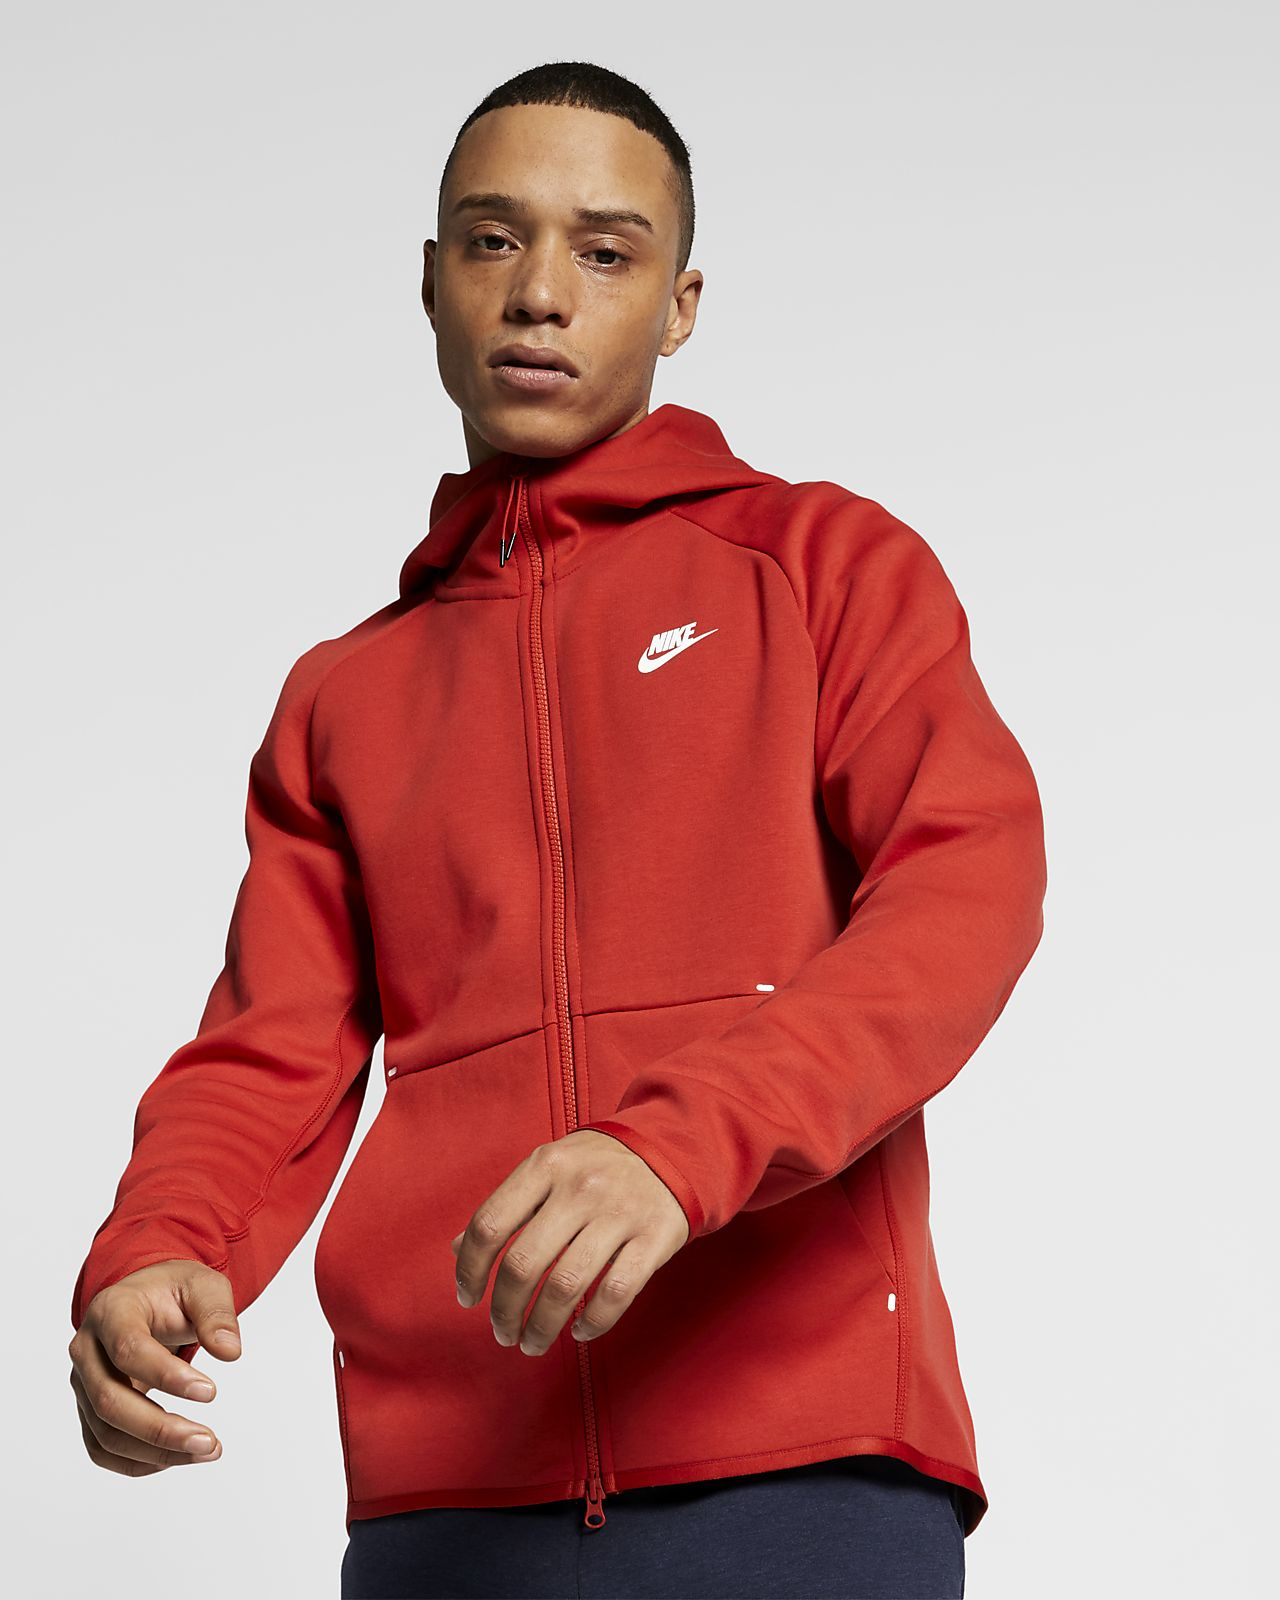 34a491ab5 Nike Sportswear Tech Fleece Men's Full-Zip Hoodie. Nike.com